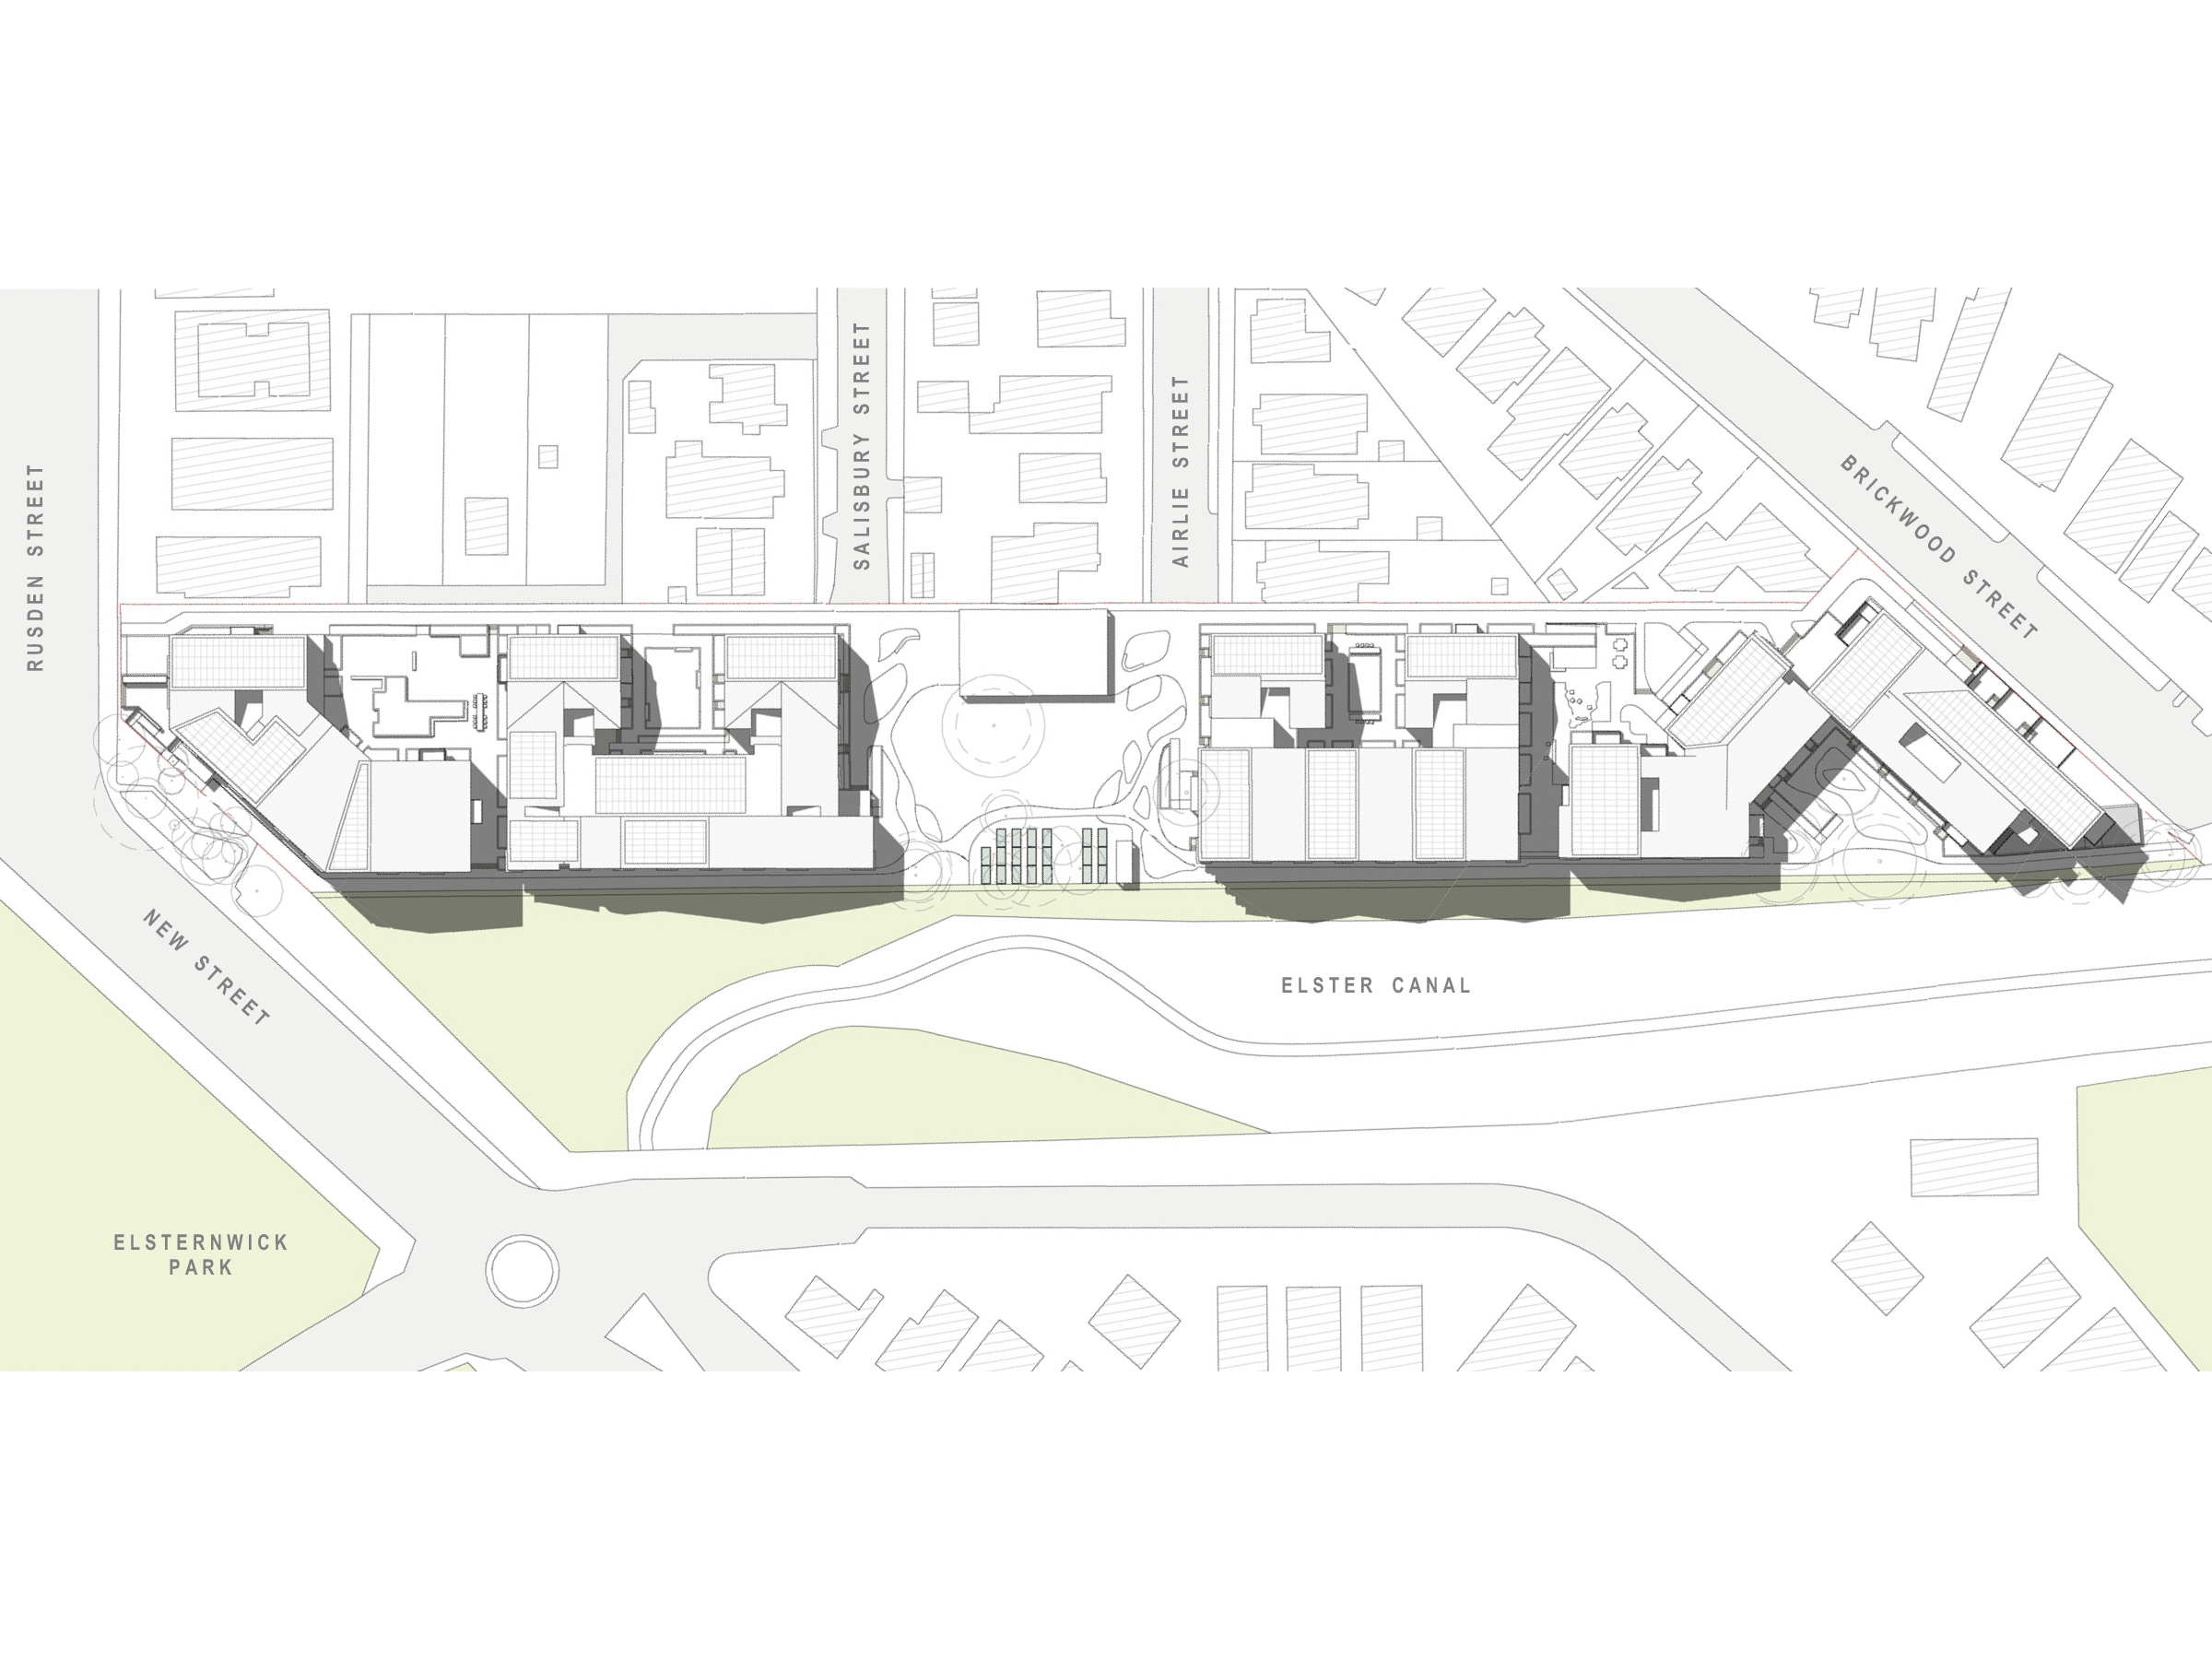 Diagram showing the shadows created by the new development in September at 12pmm